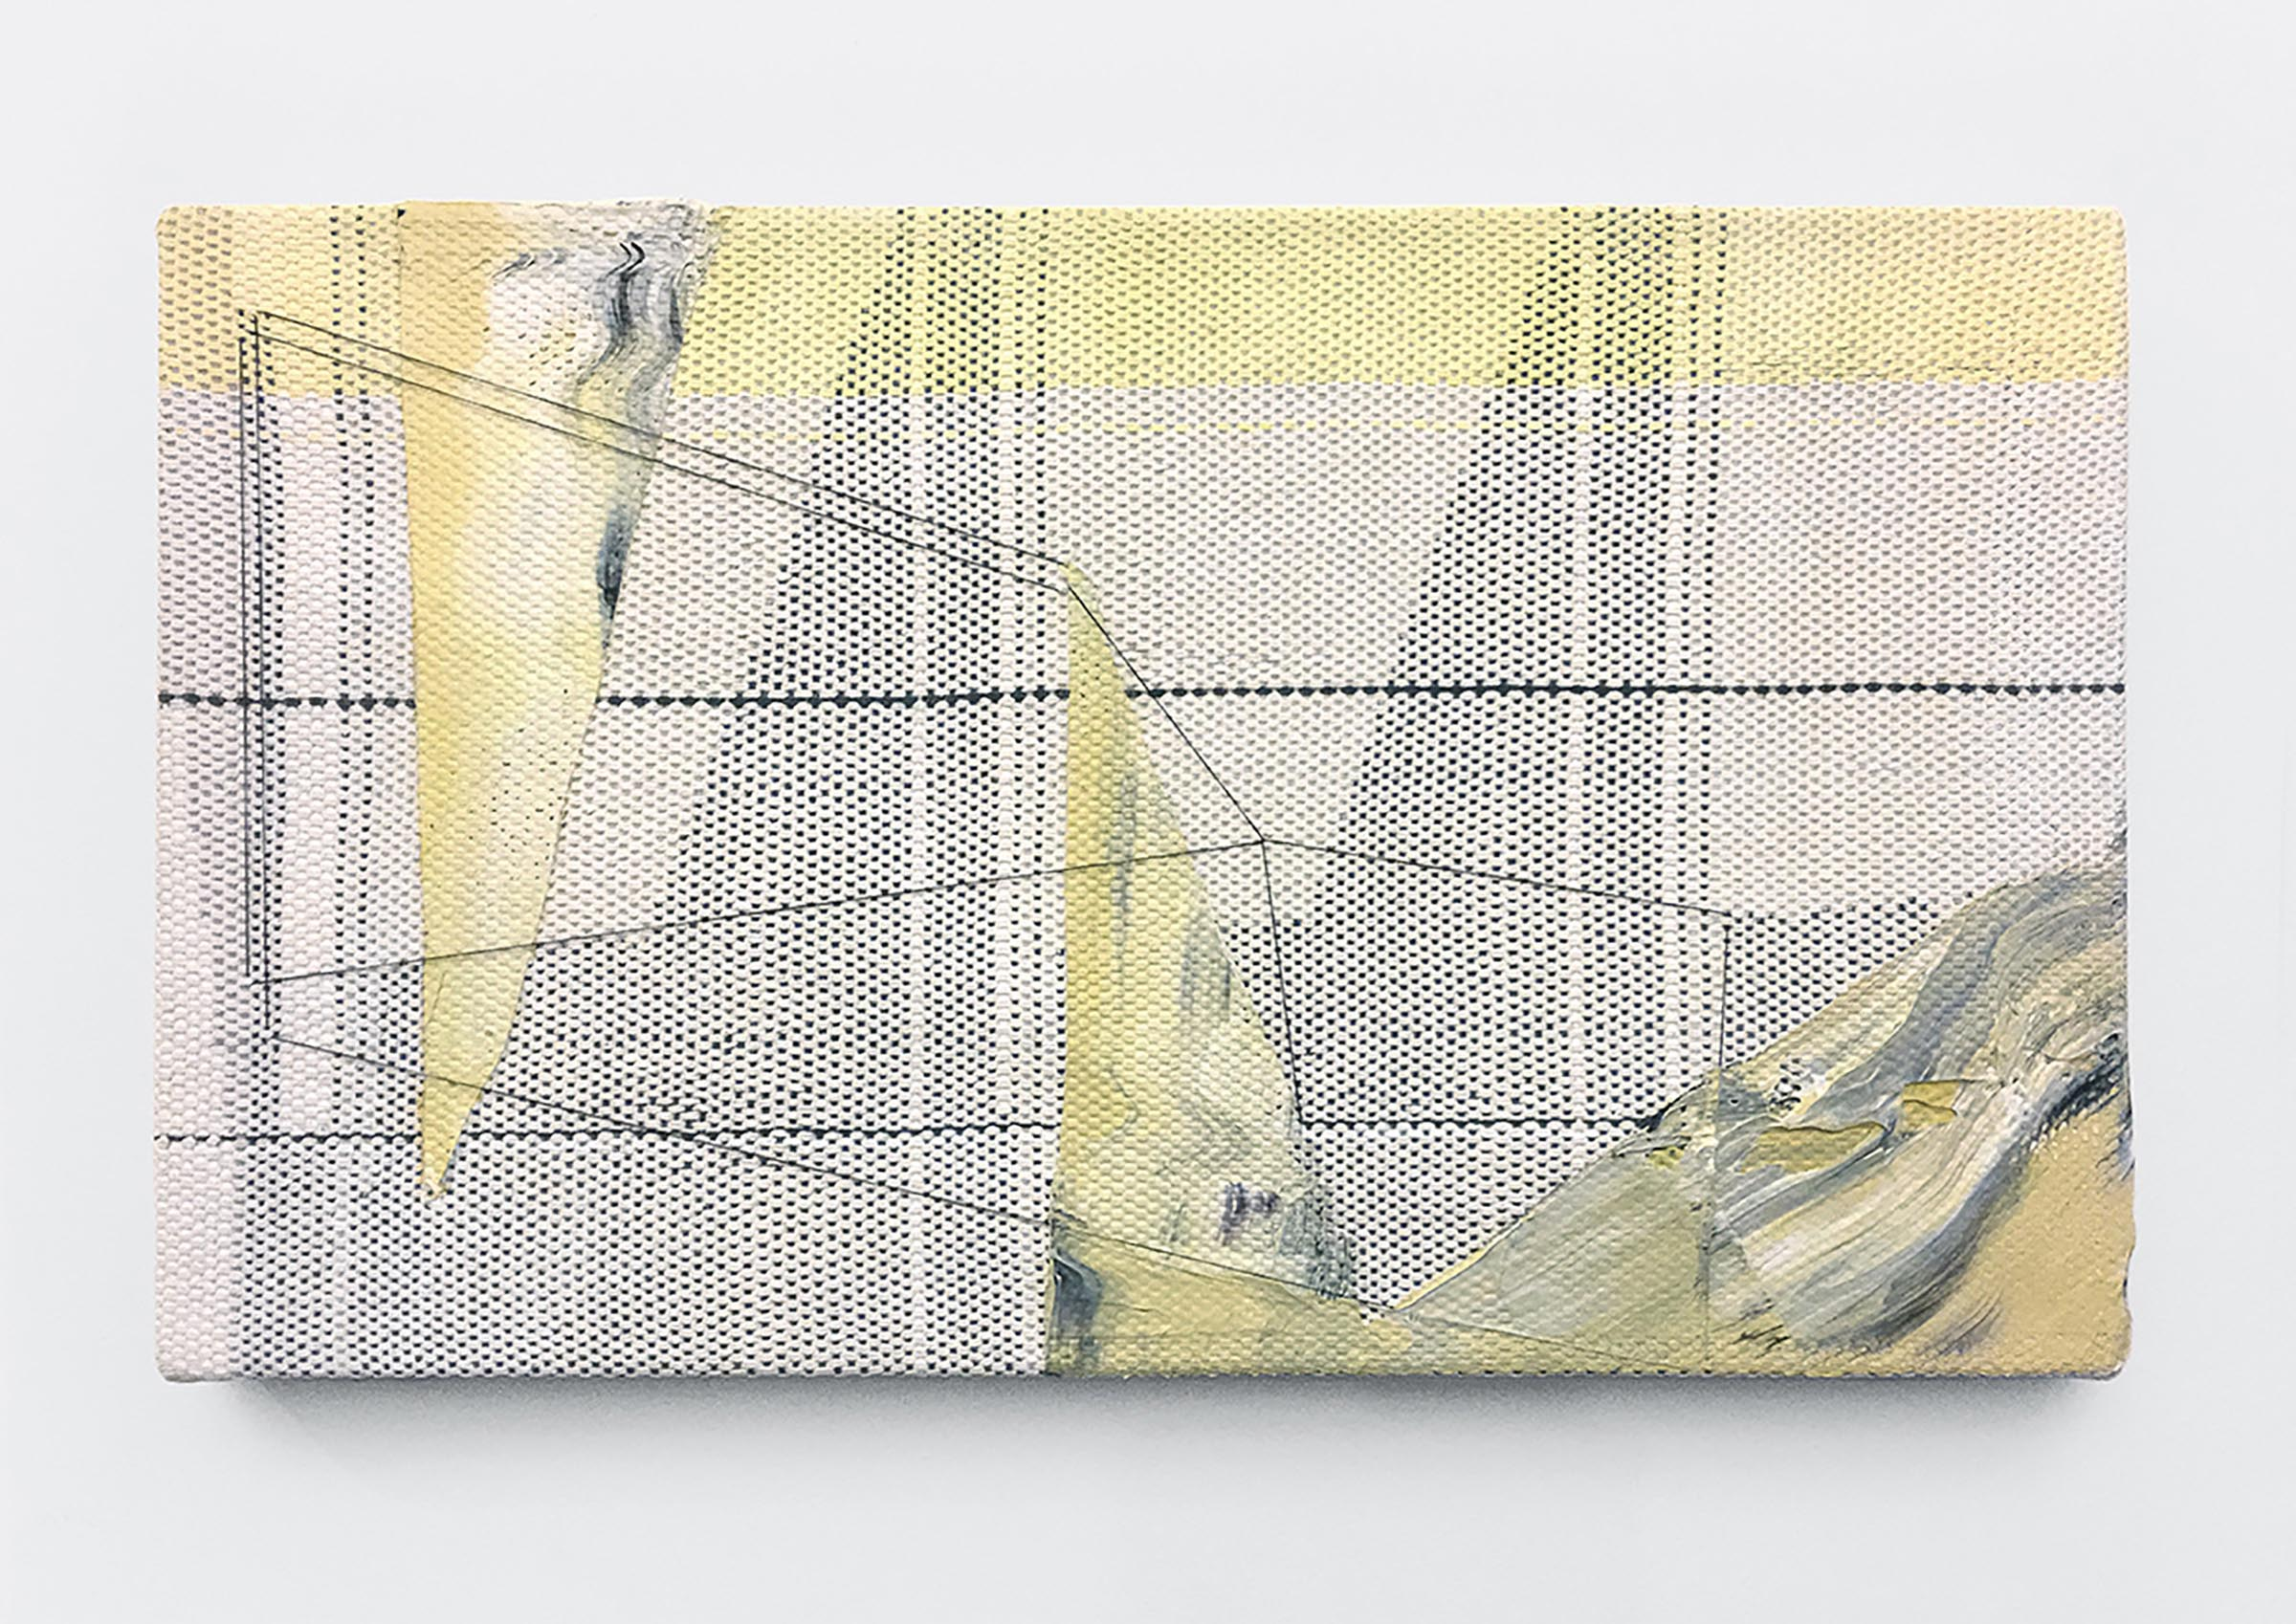 Mary Raap, Changing Tide, Handwoven cotton, silk, thread, and acrylic over canvas, 14 x 24 x 1.5 in, 2019